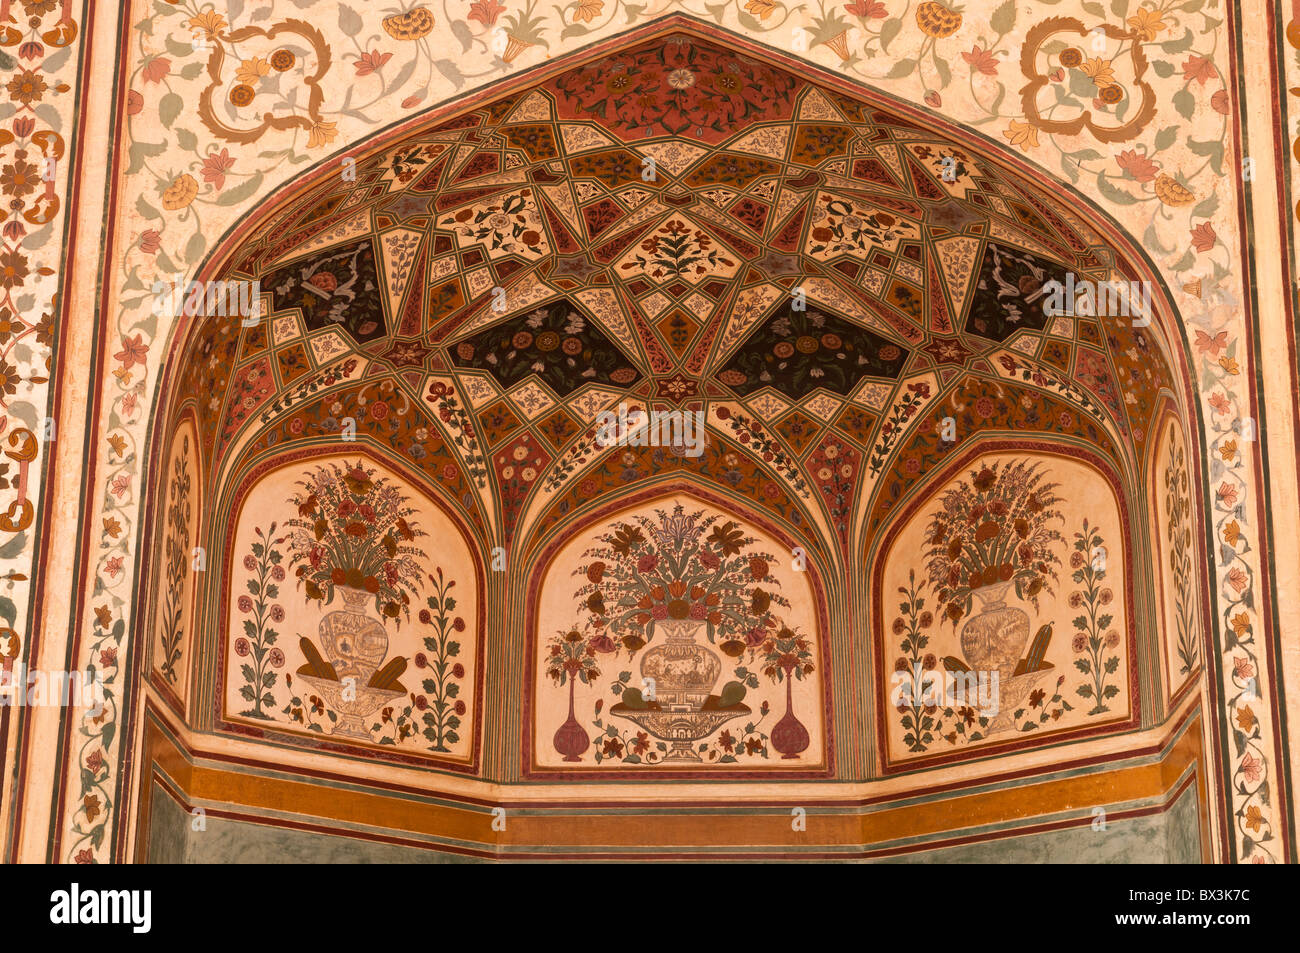 Rajasthan Fort Images, Stock Photos & Vectors   Shutterstock